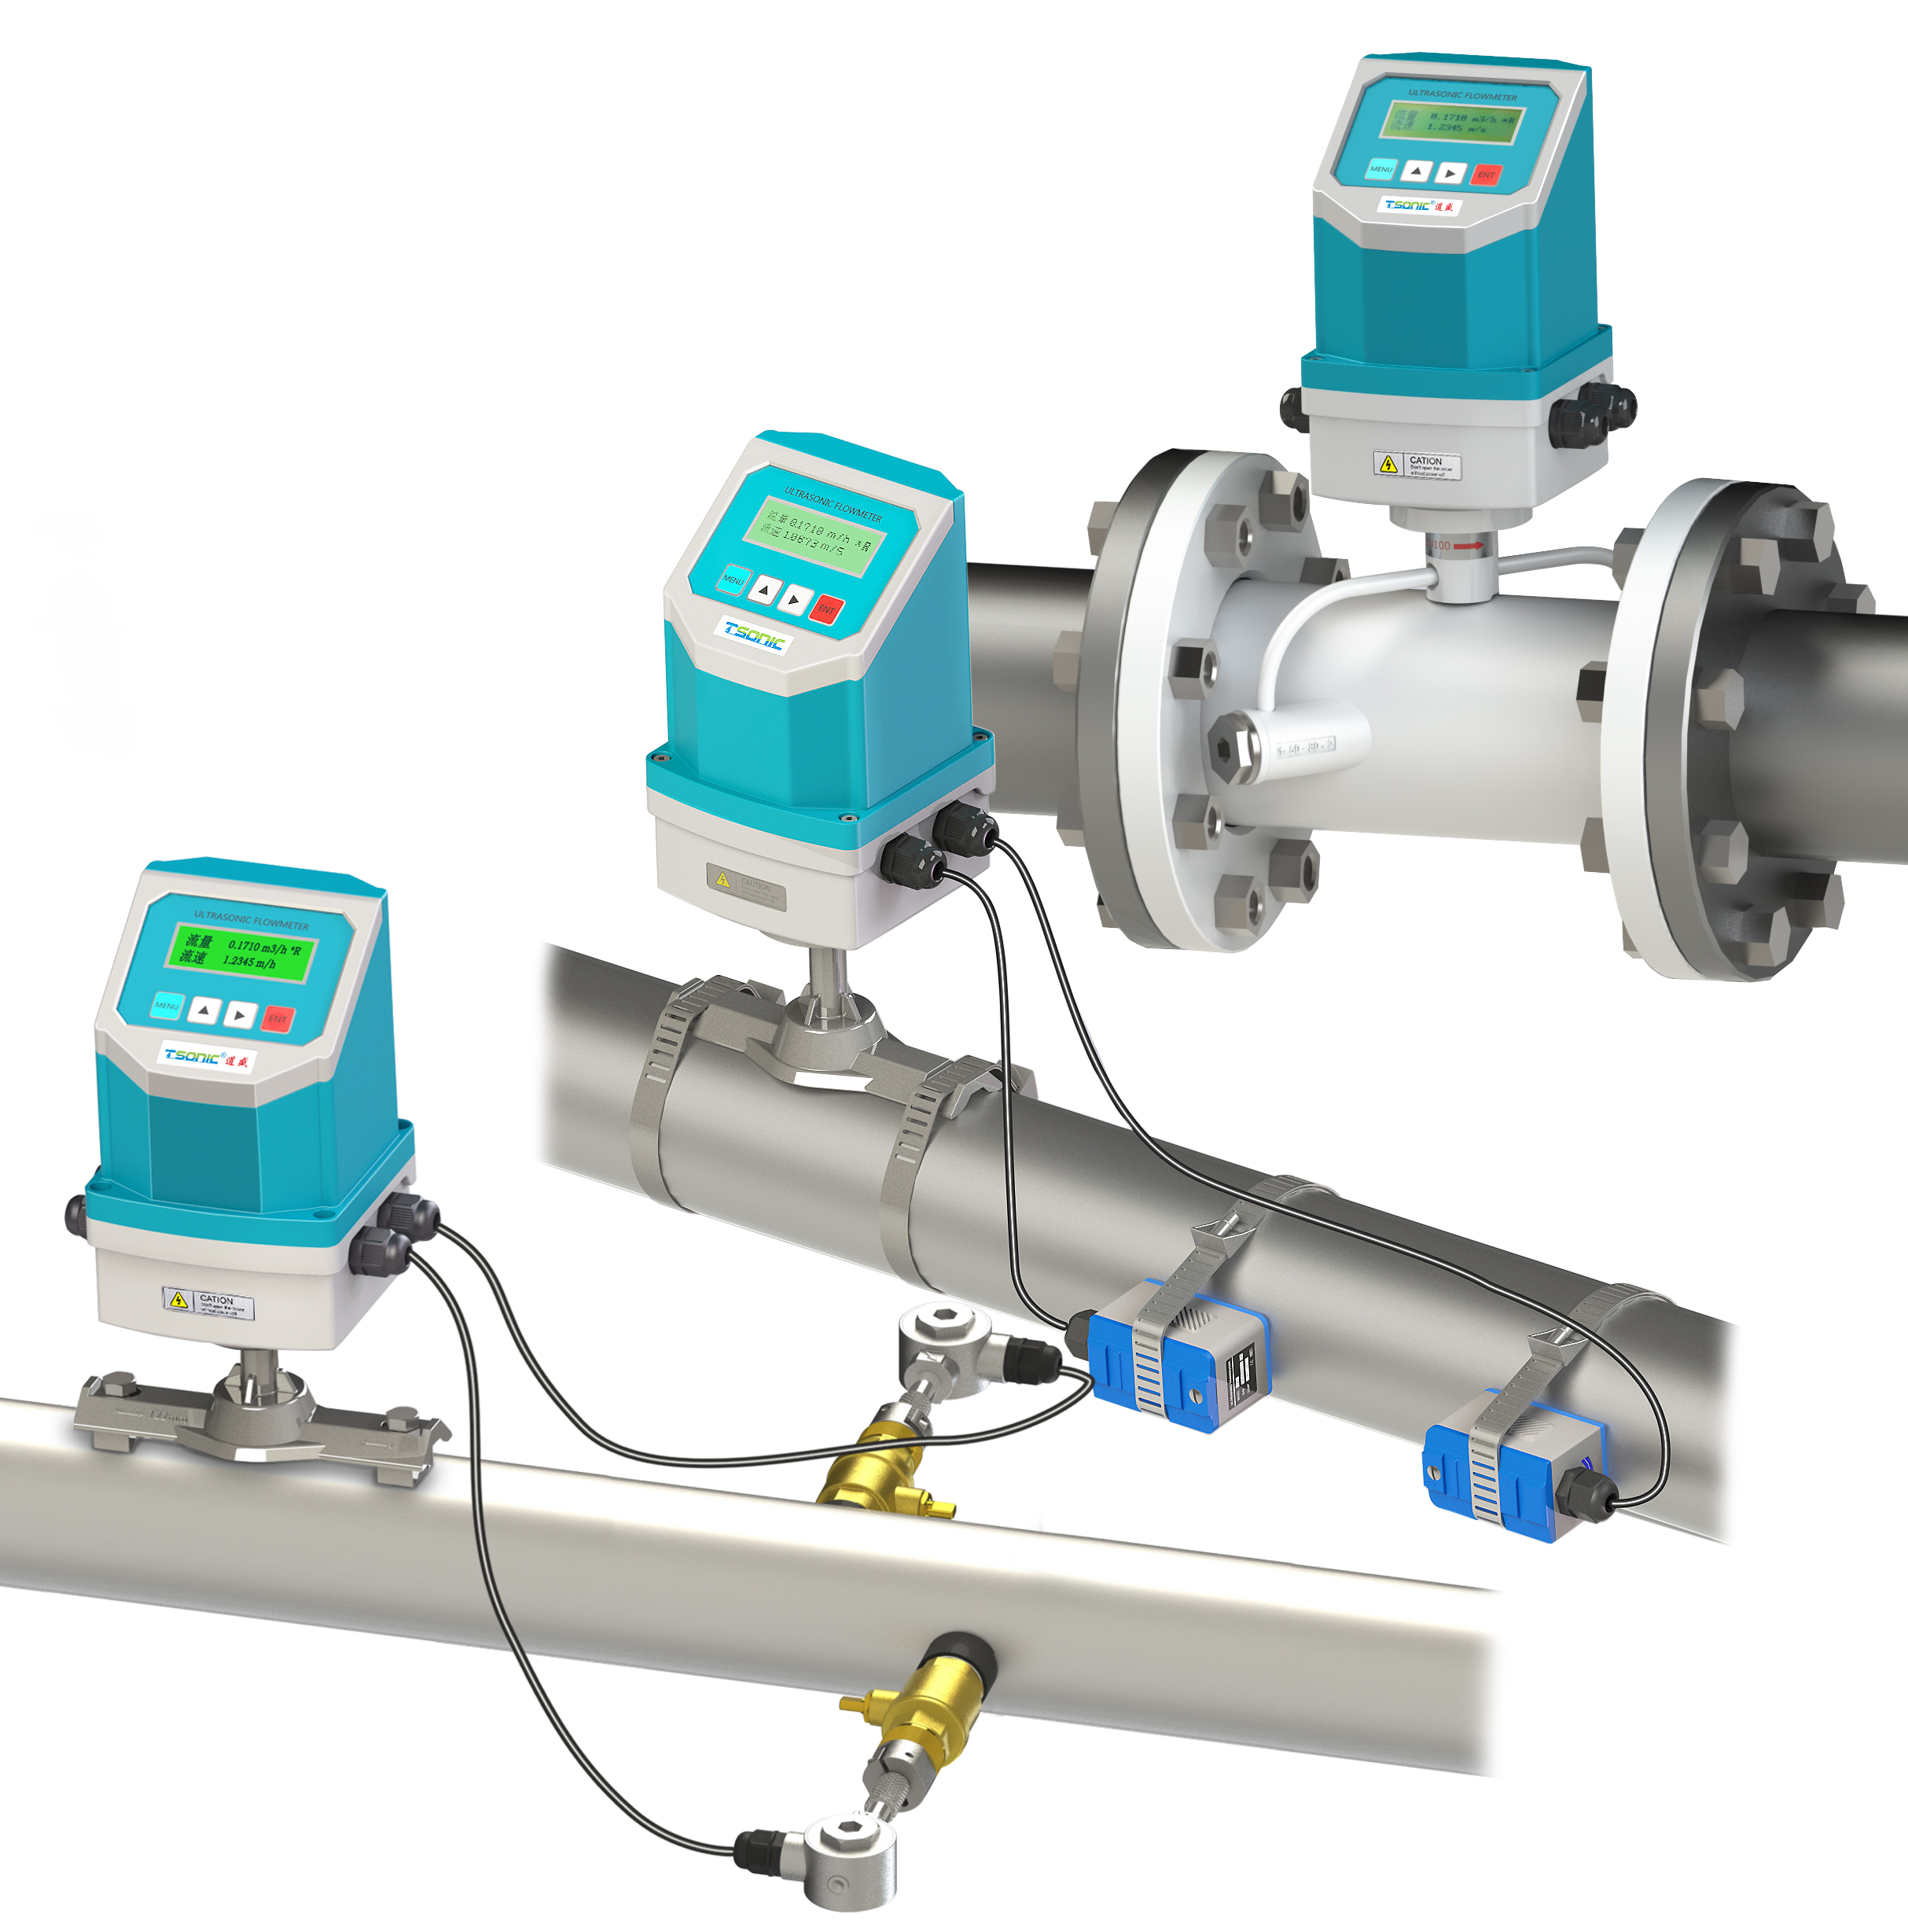 Integrated ultrasonic flow meter